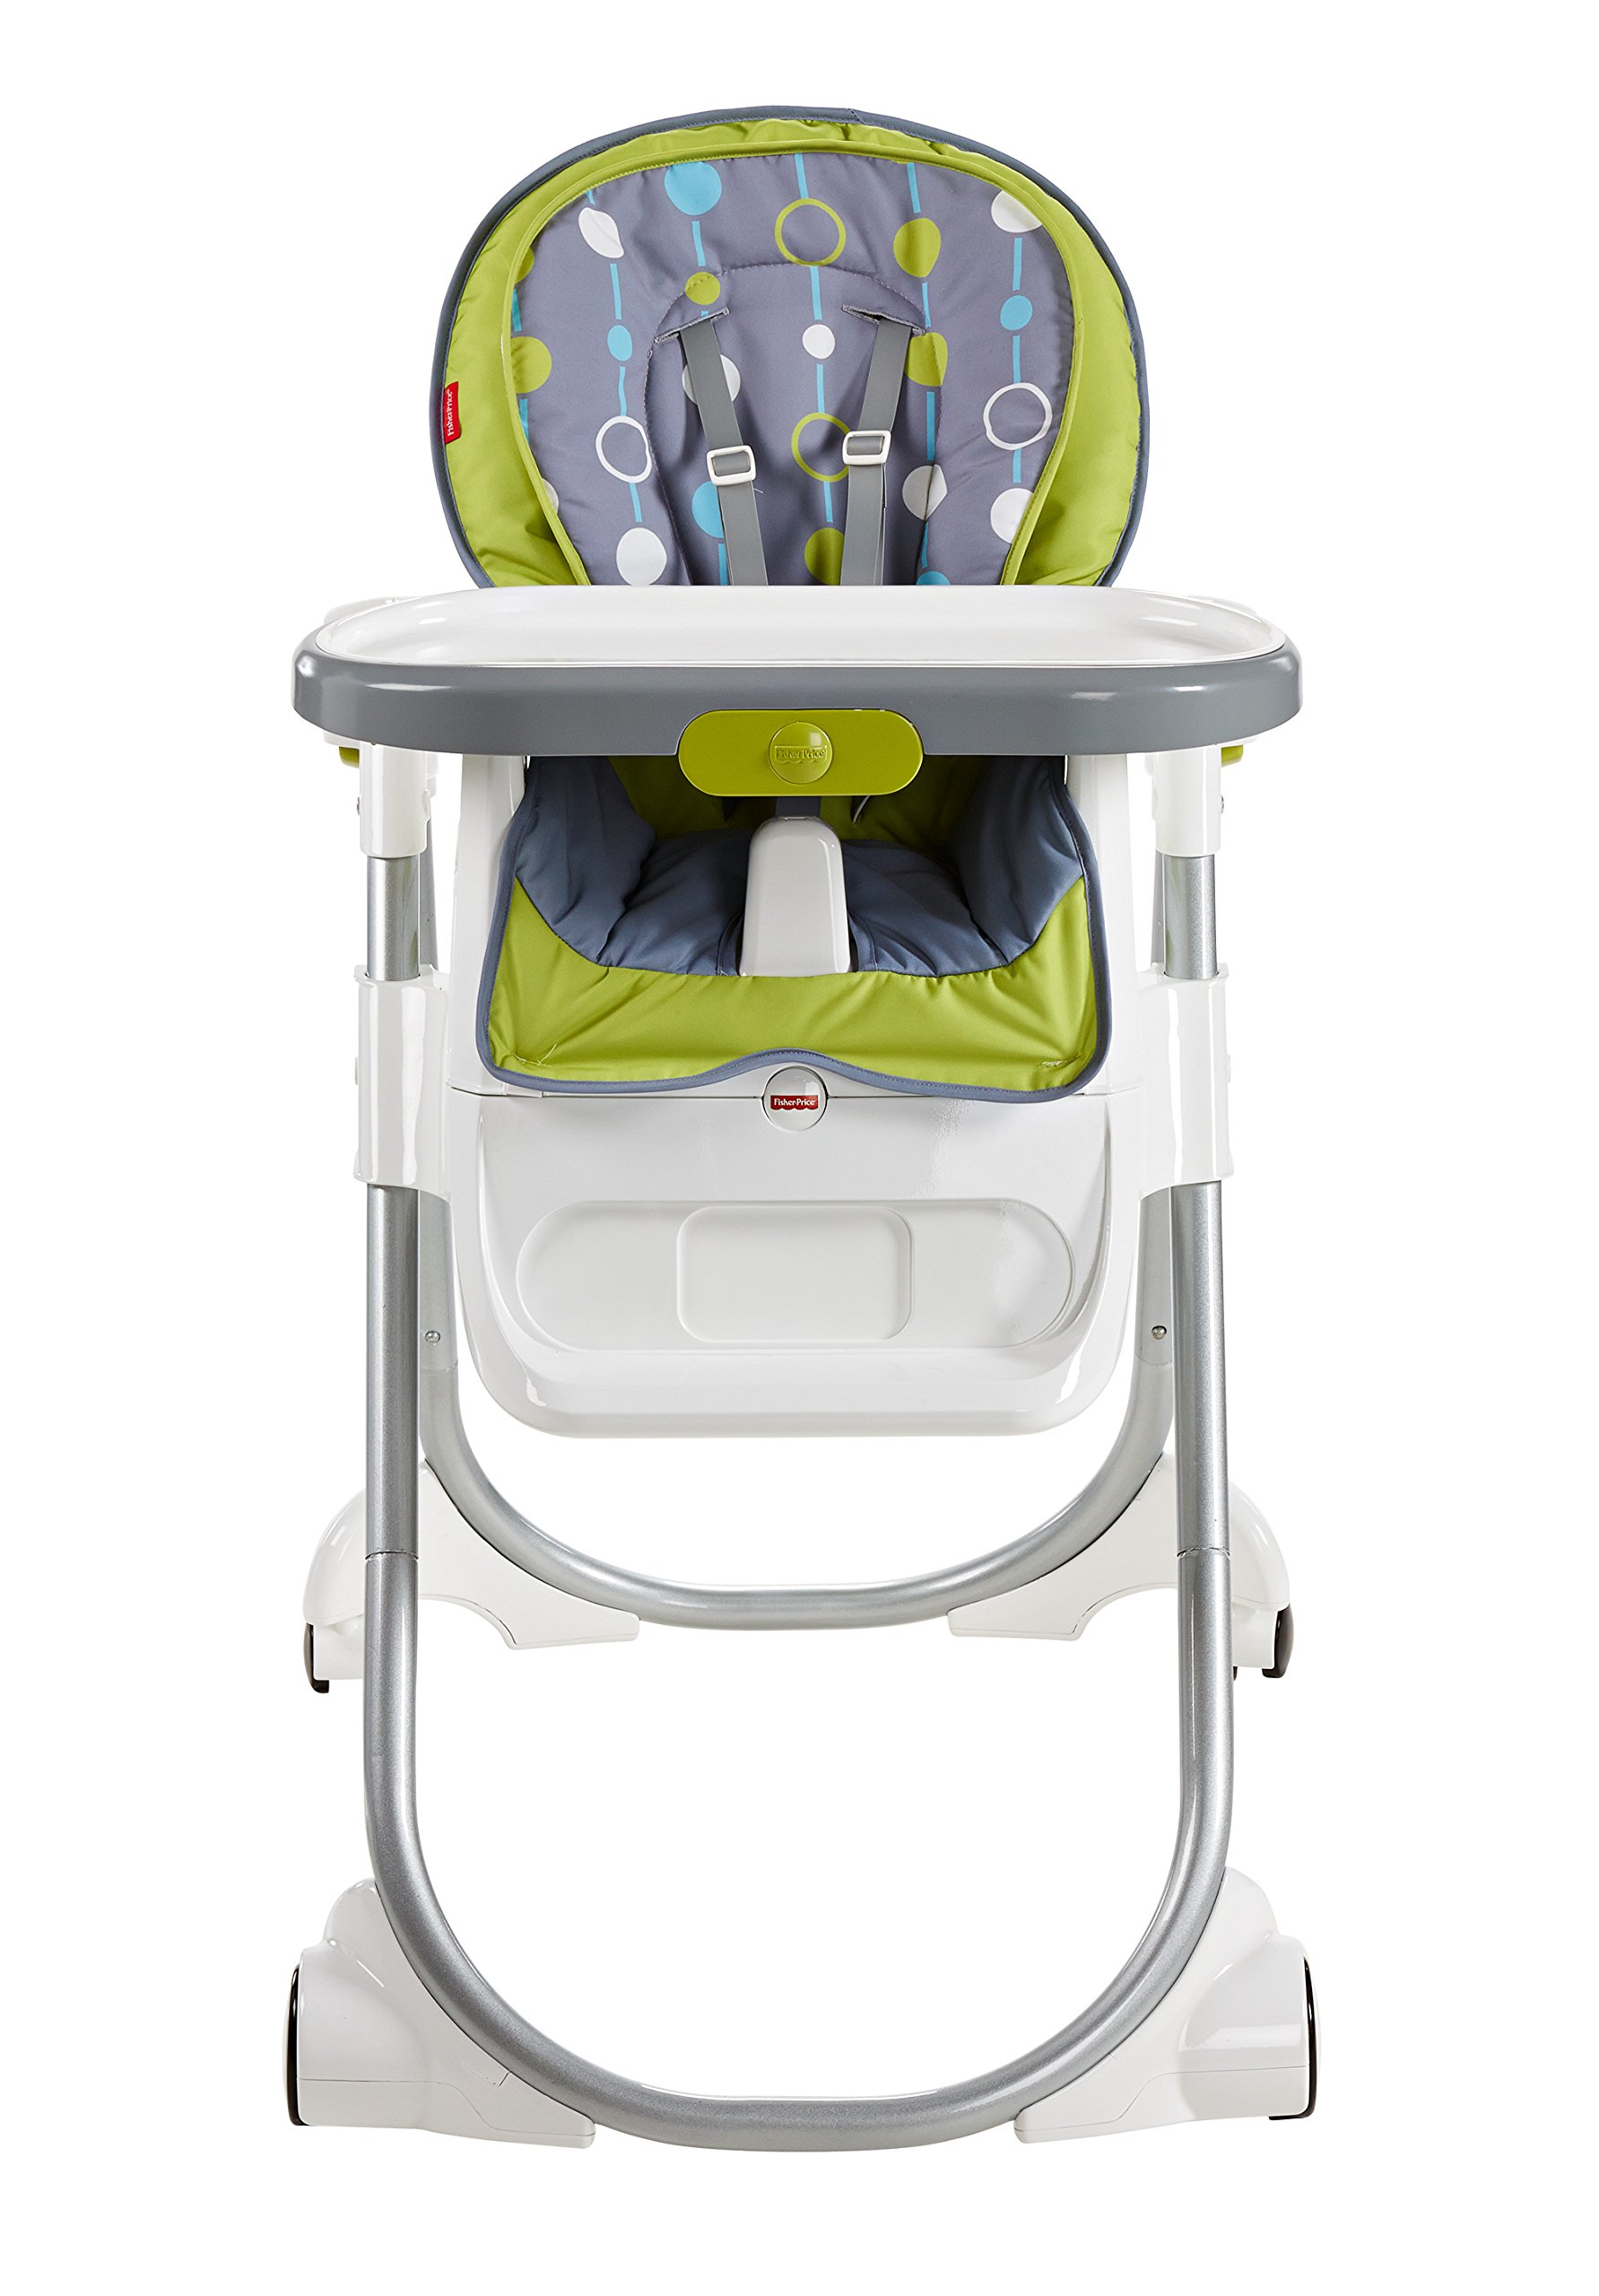 Fisher-Price 4-in-1 Total Clean High Chair, Green/Gray by Fisher-Price (Image #6)